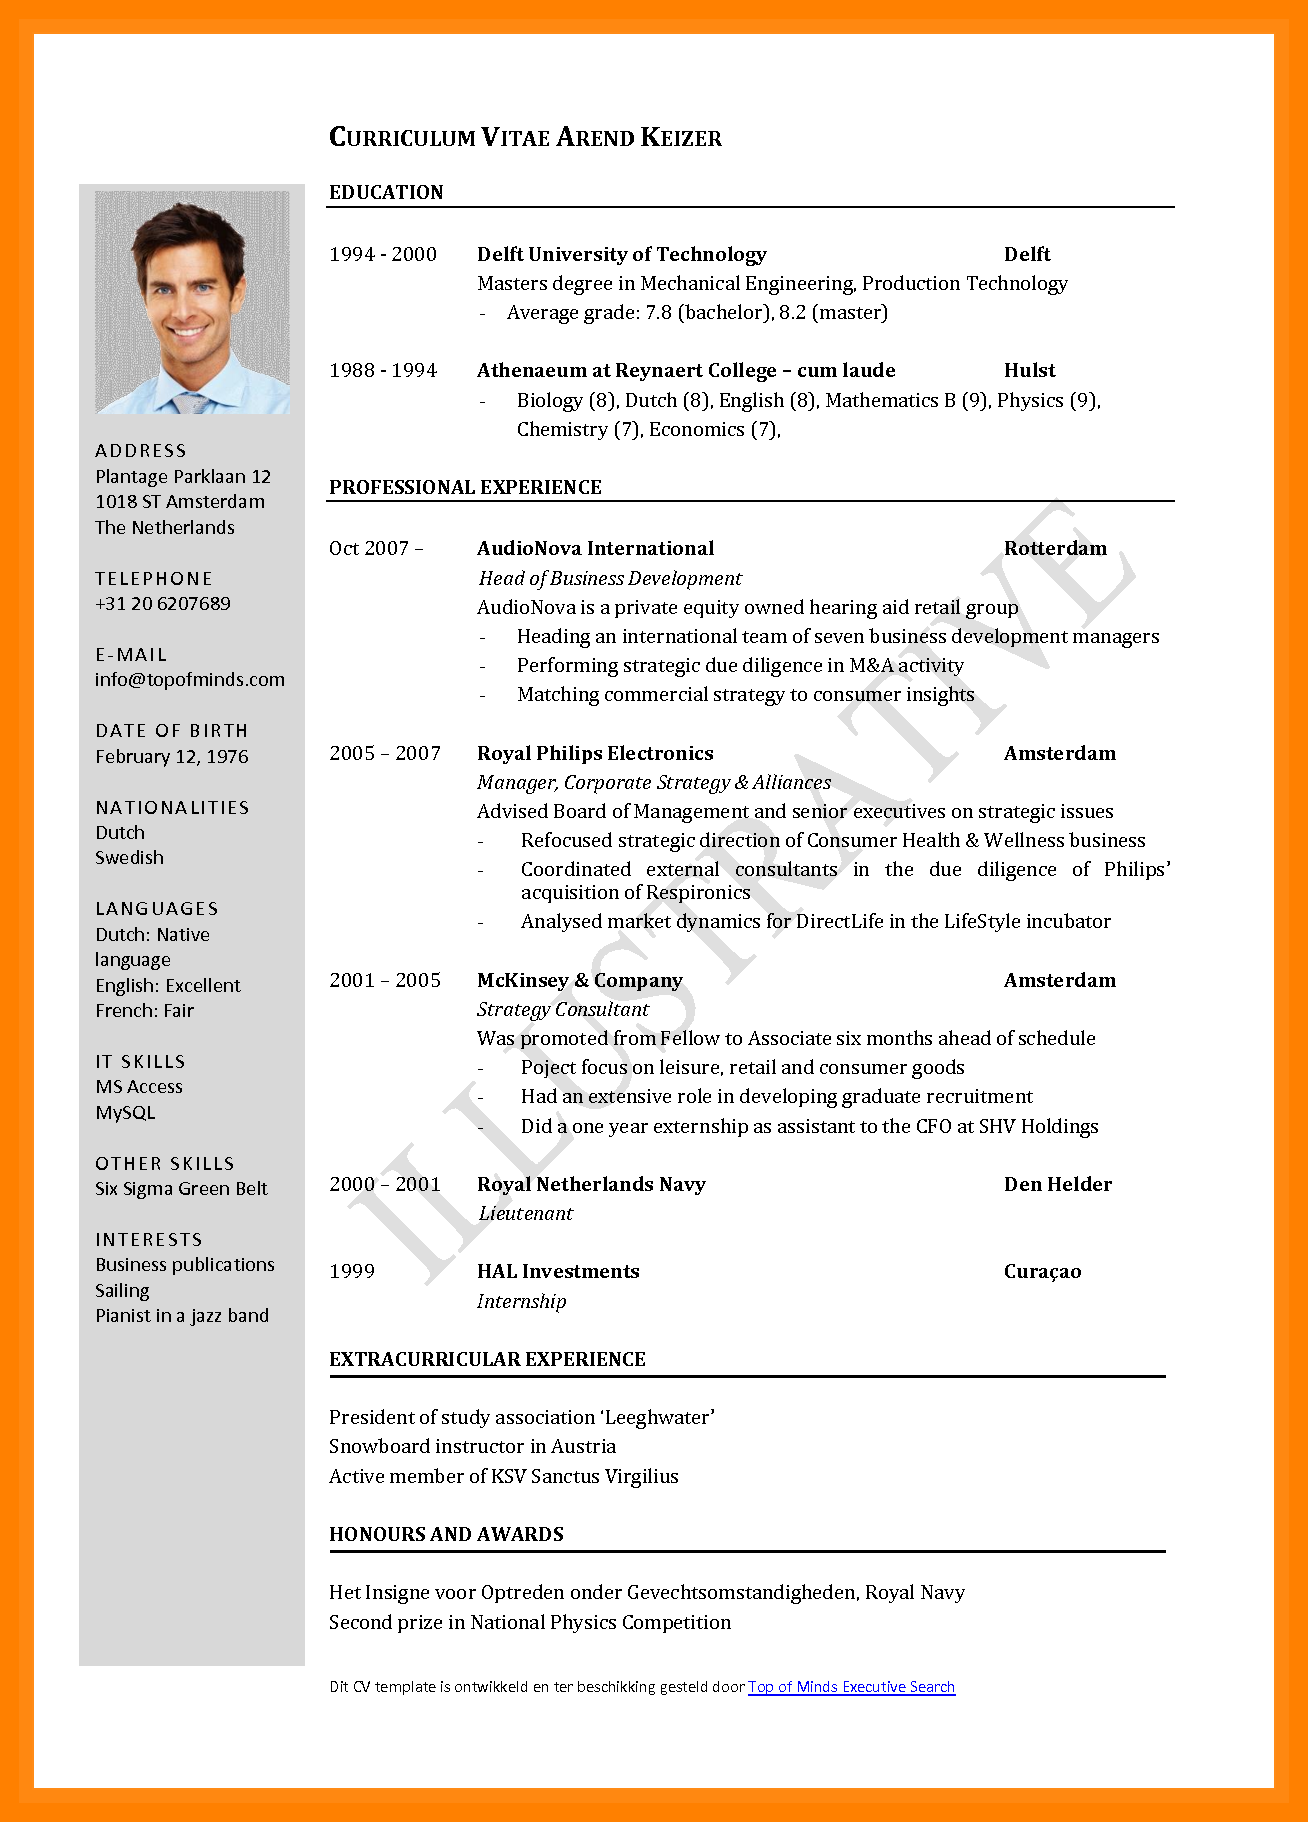 Cv Template Job Application Curriculum Vitae Format Sample